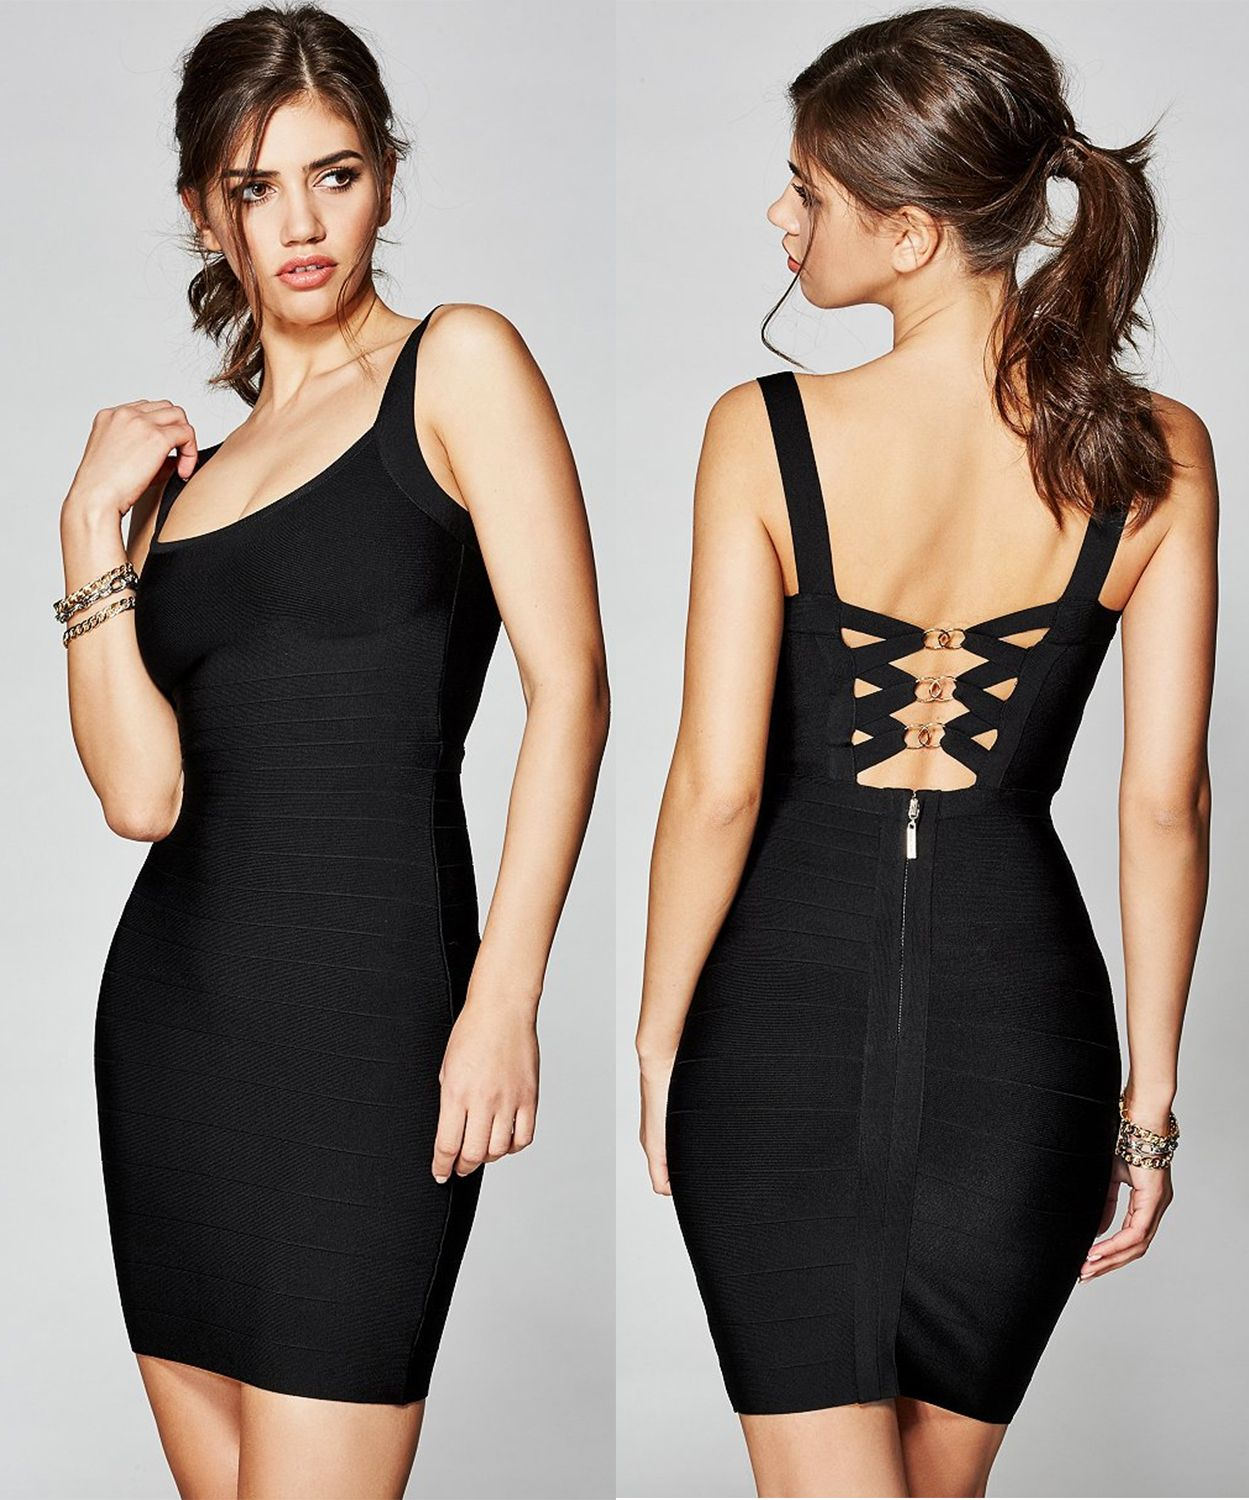 The Vasti Bandage Dress  3612b498b0c7